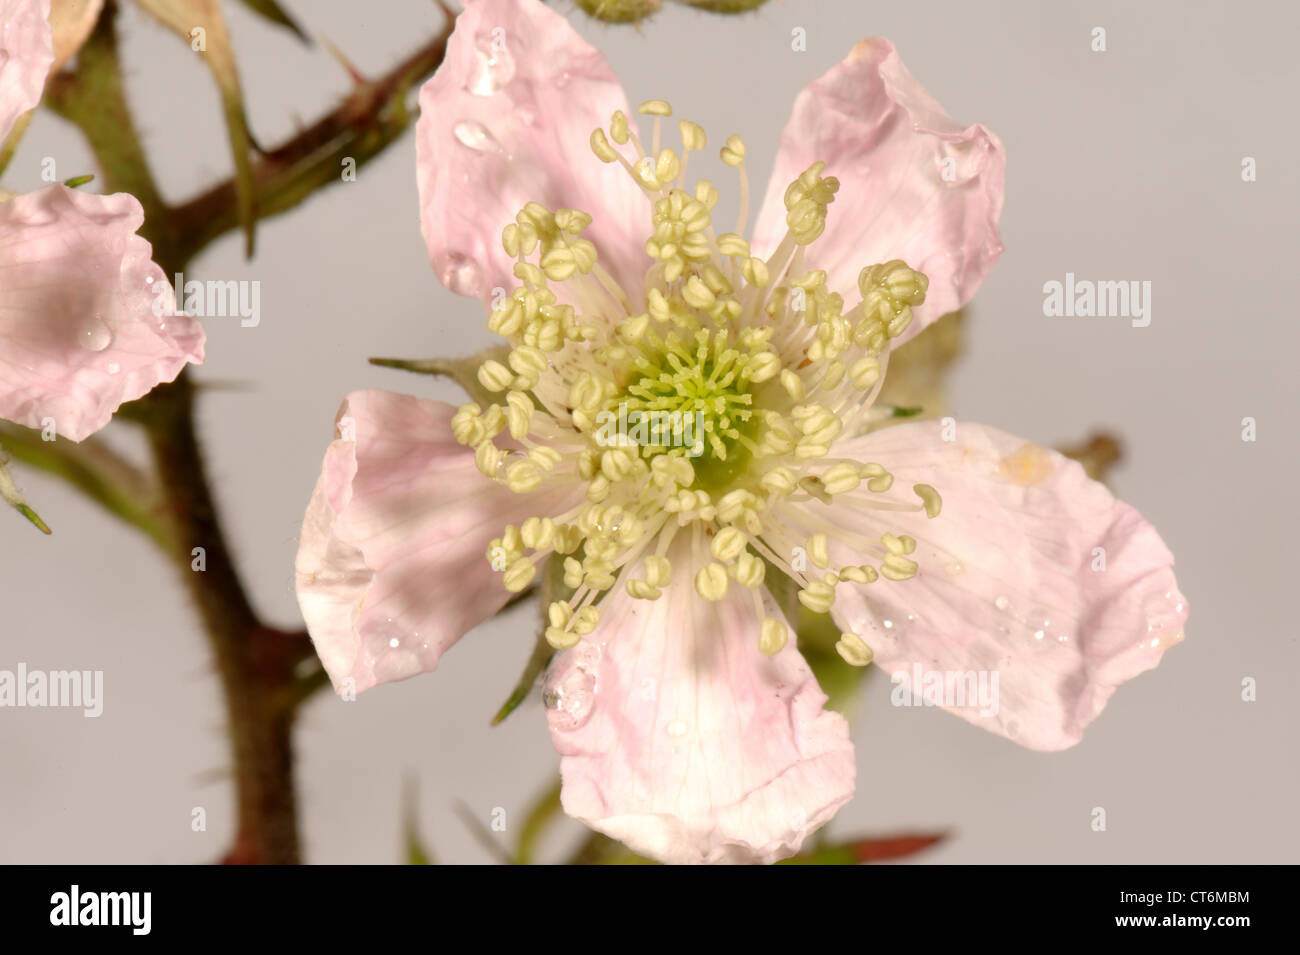 Blackberry or bramble Rubus fruticosus flowers and flower structure - Stock Image